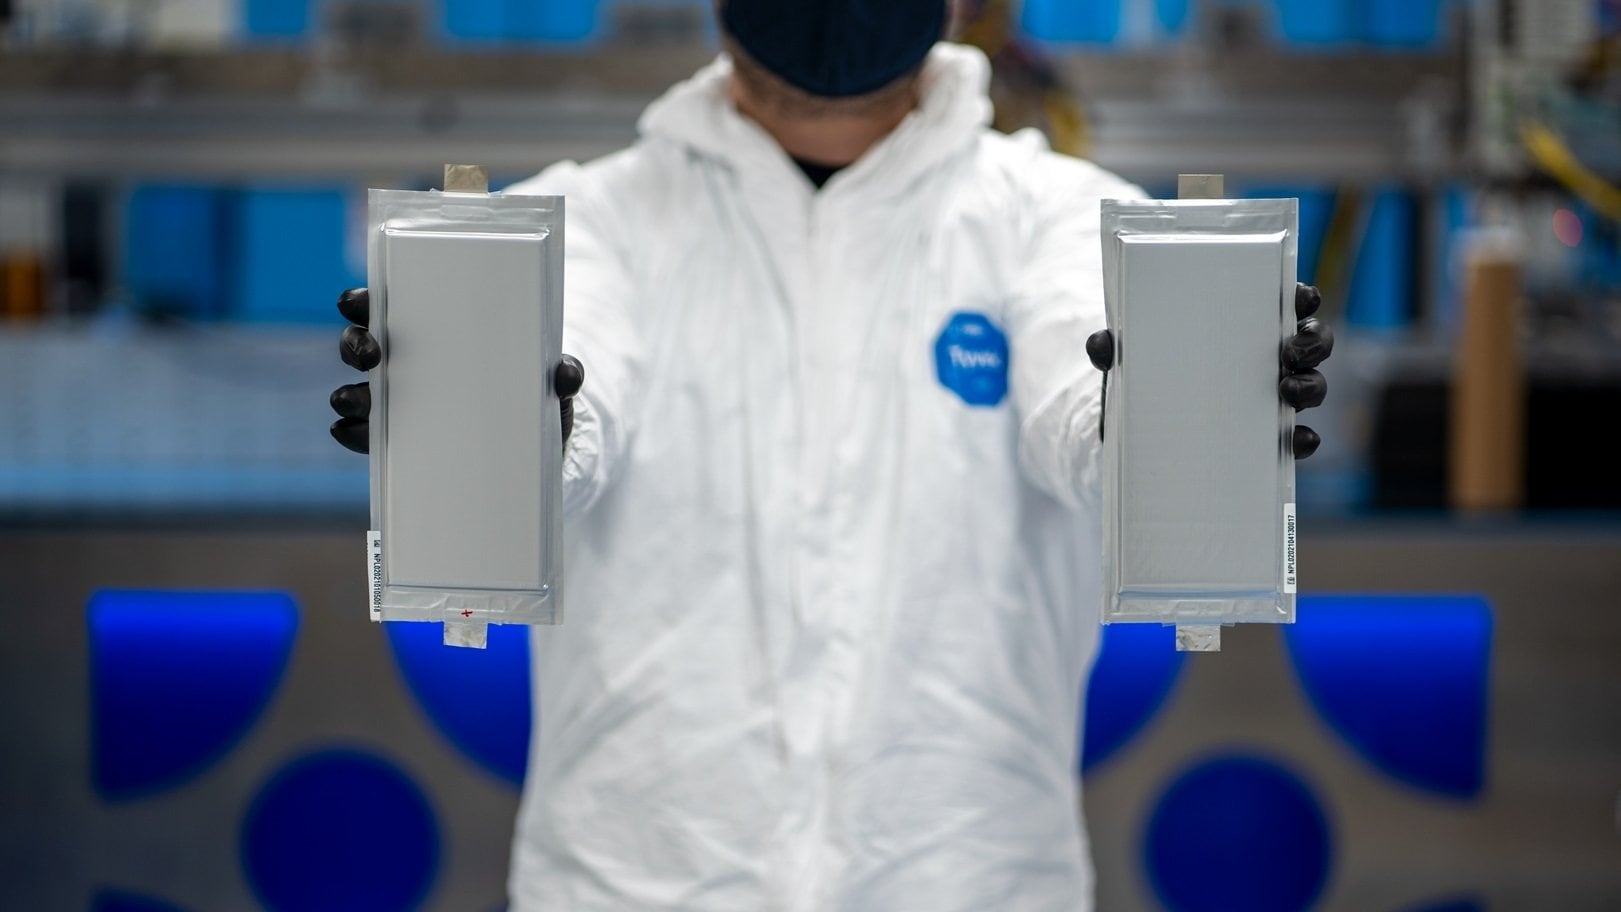 Ford bets on solid-state batteries to lower electrification costs, make EVs affordable- Technology News, Gadgetclock